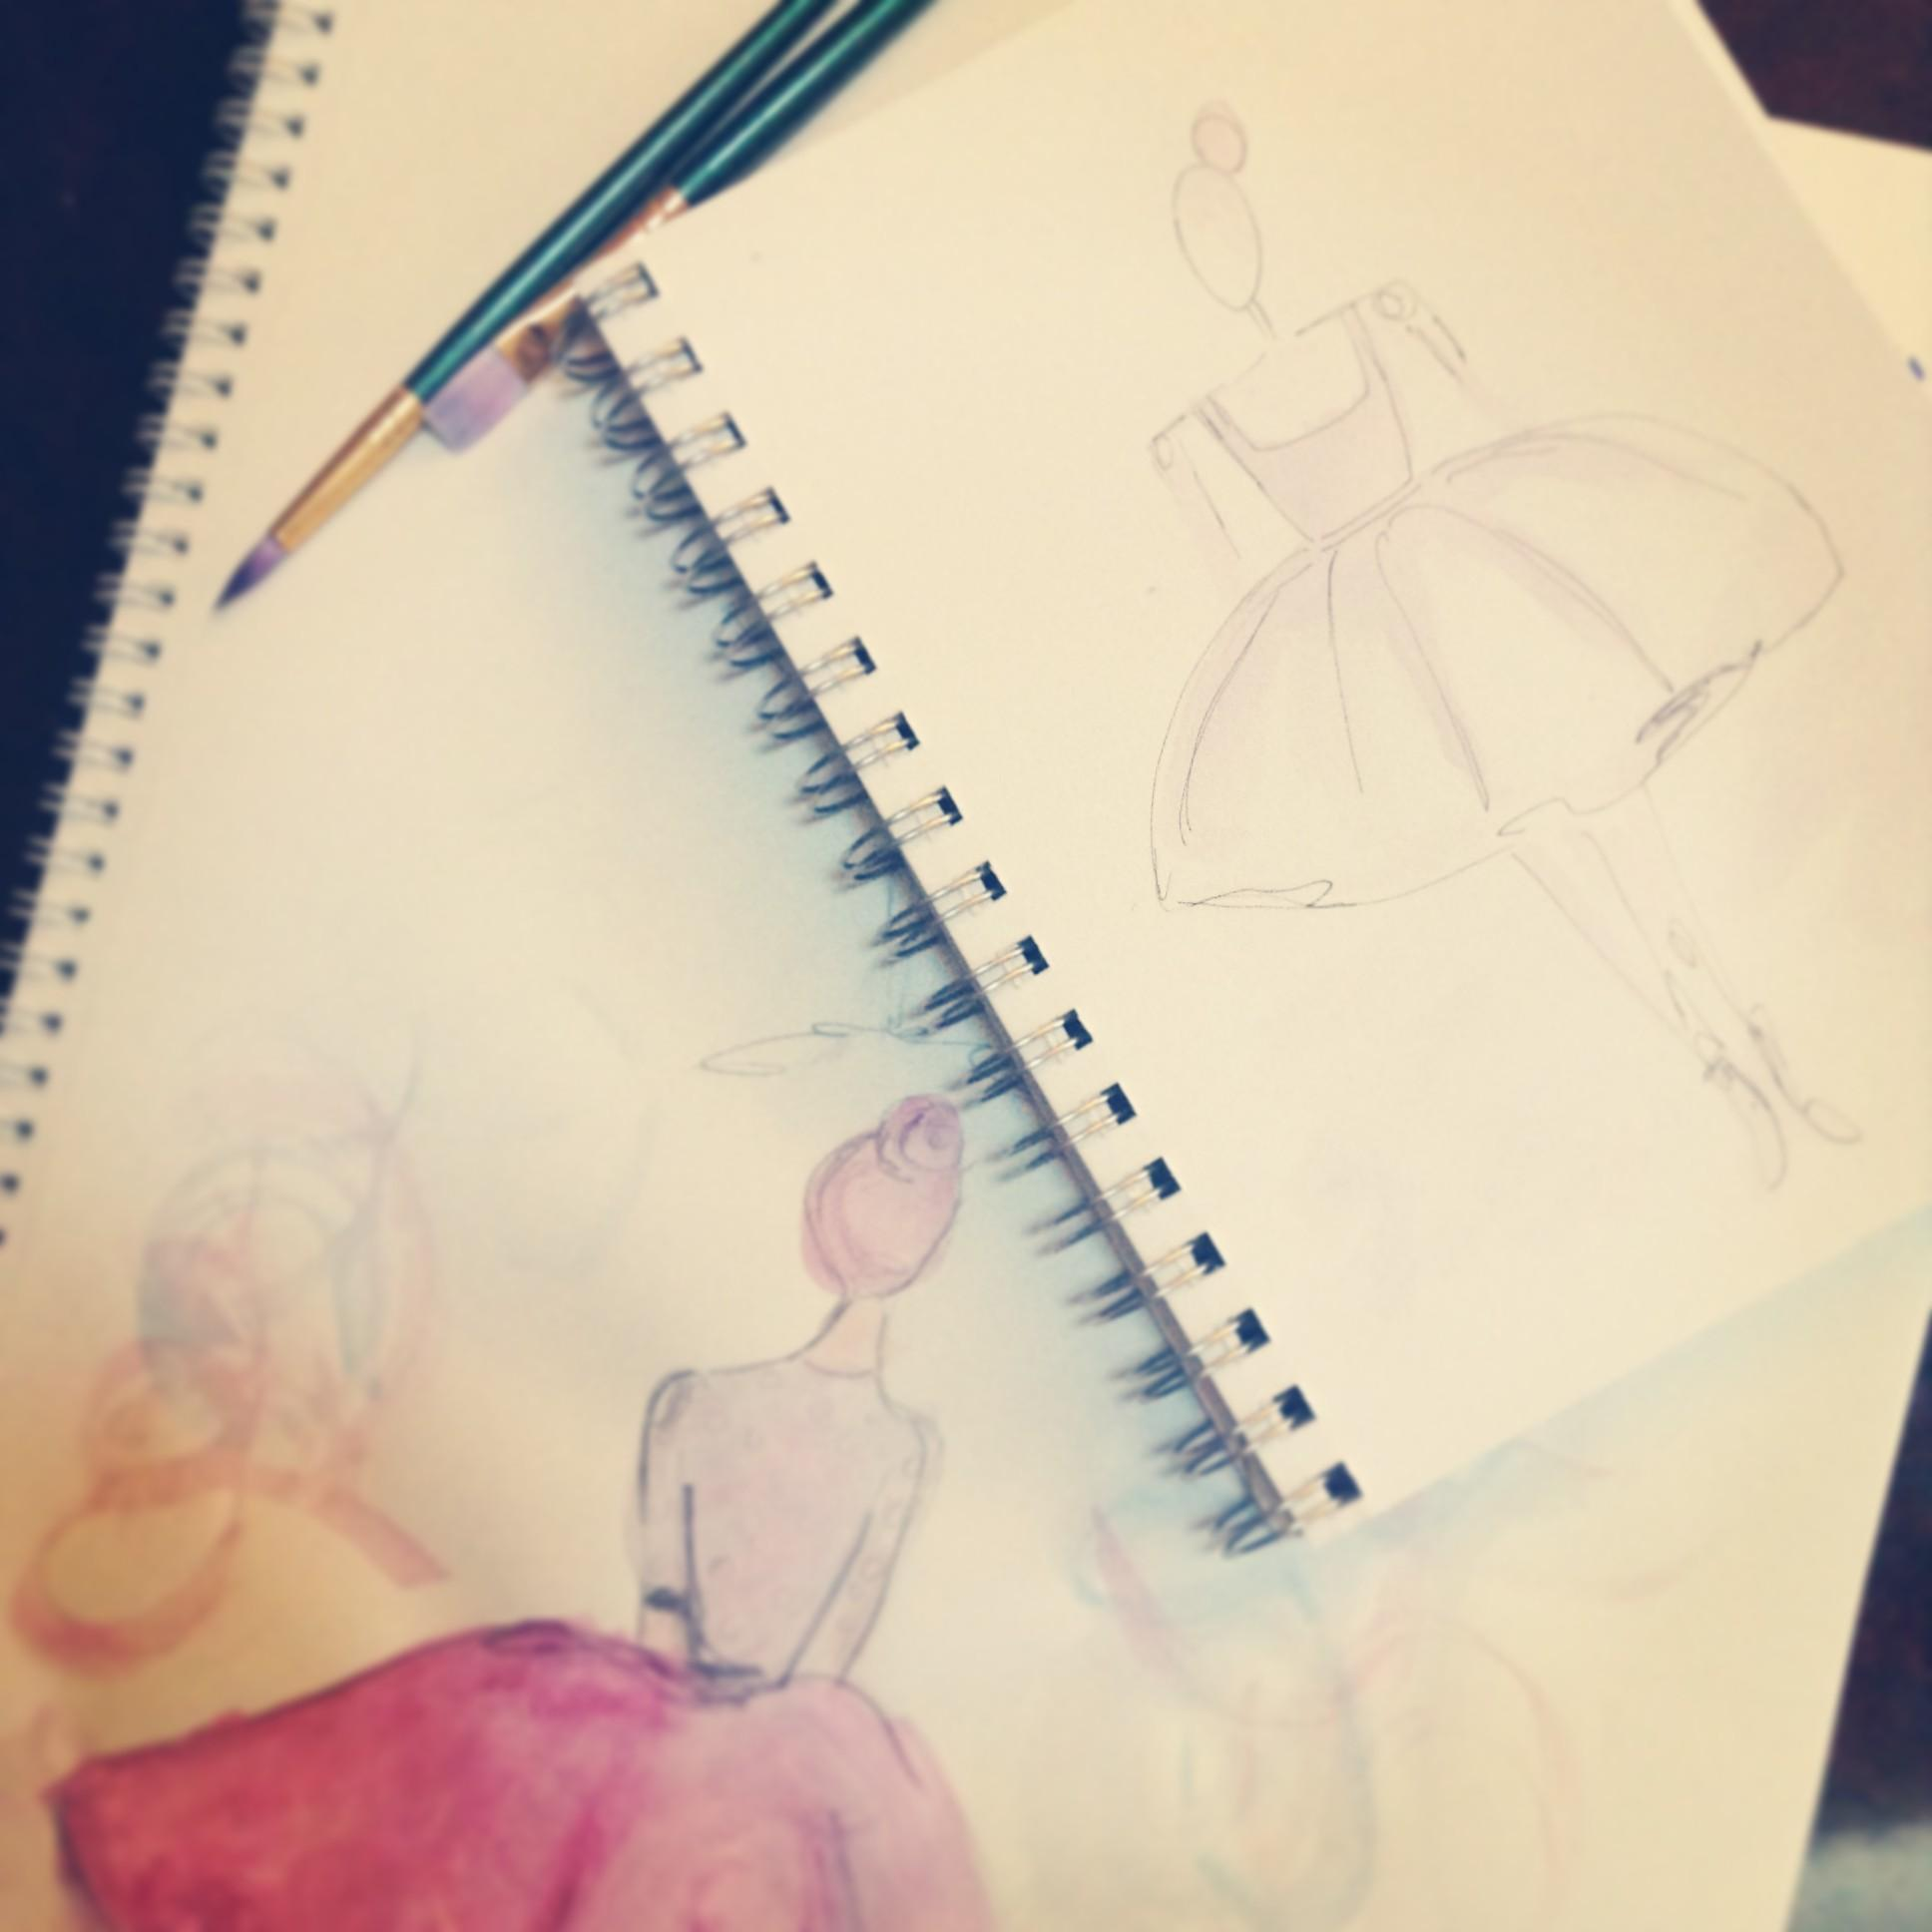 UPDATED 3/21 MILESTONE: Flirty, fun, effortlessly chic - image 6 - student project